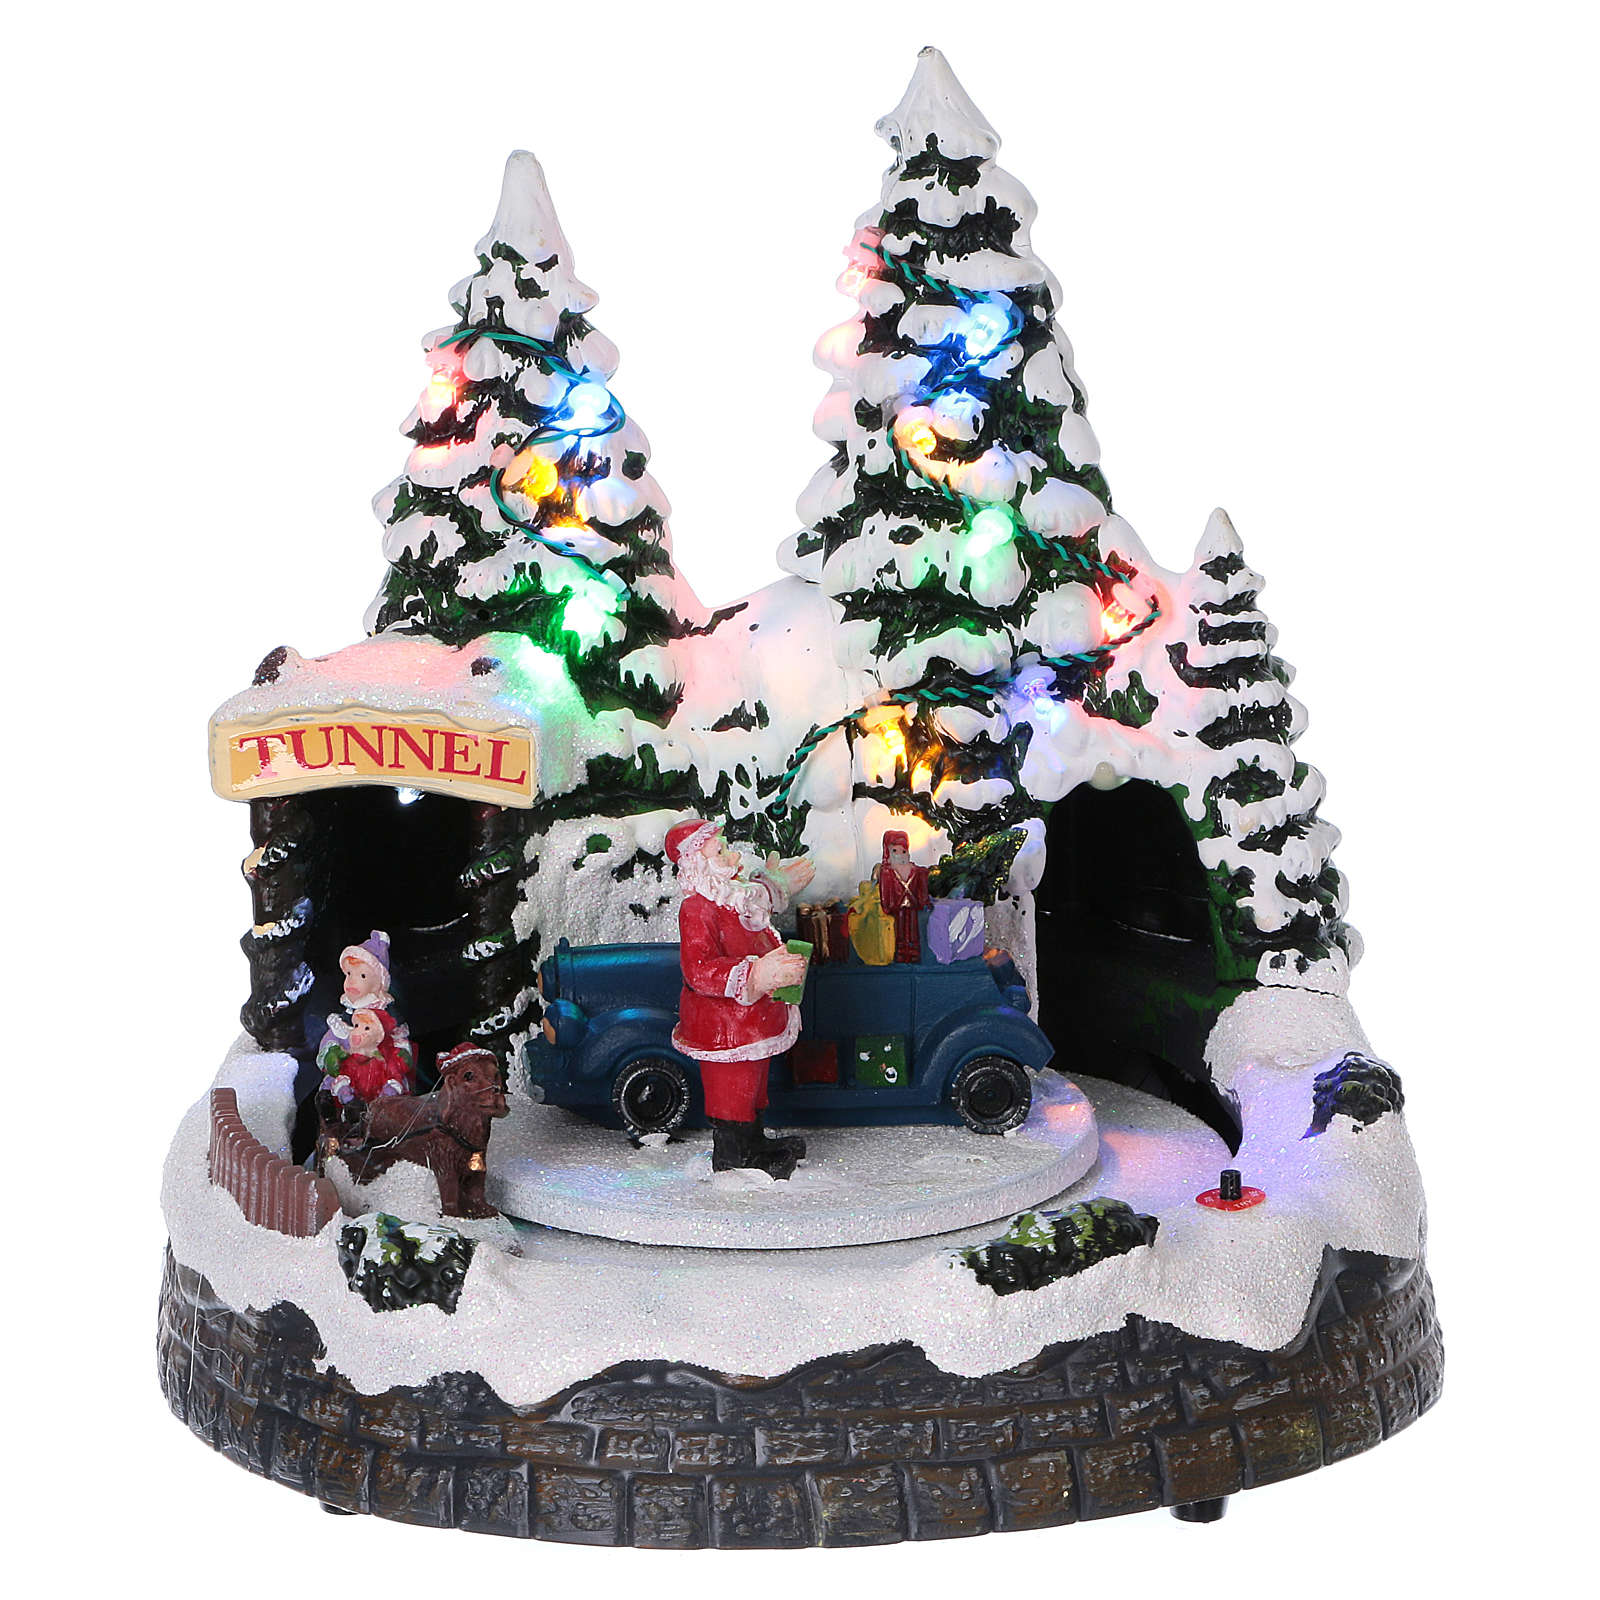 christmas village scene moving sleigh tunnel and santa claus 20x20x18 cm 3